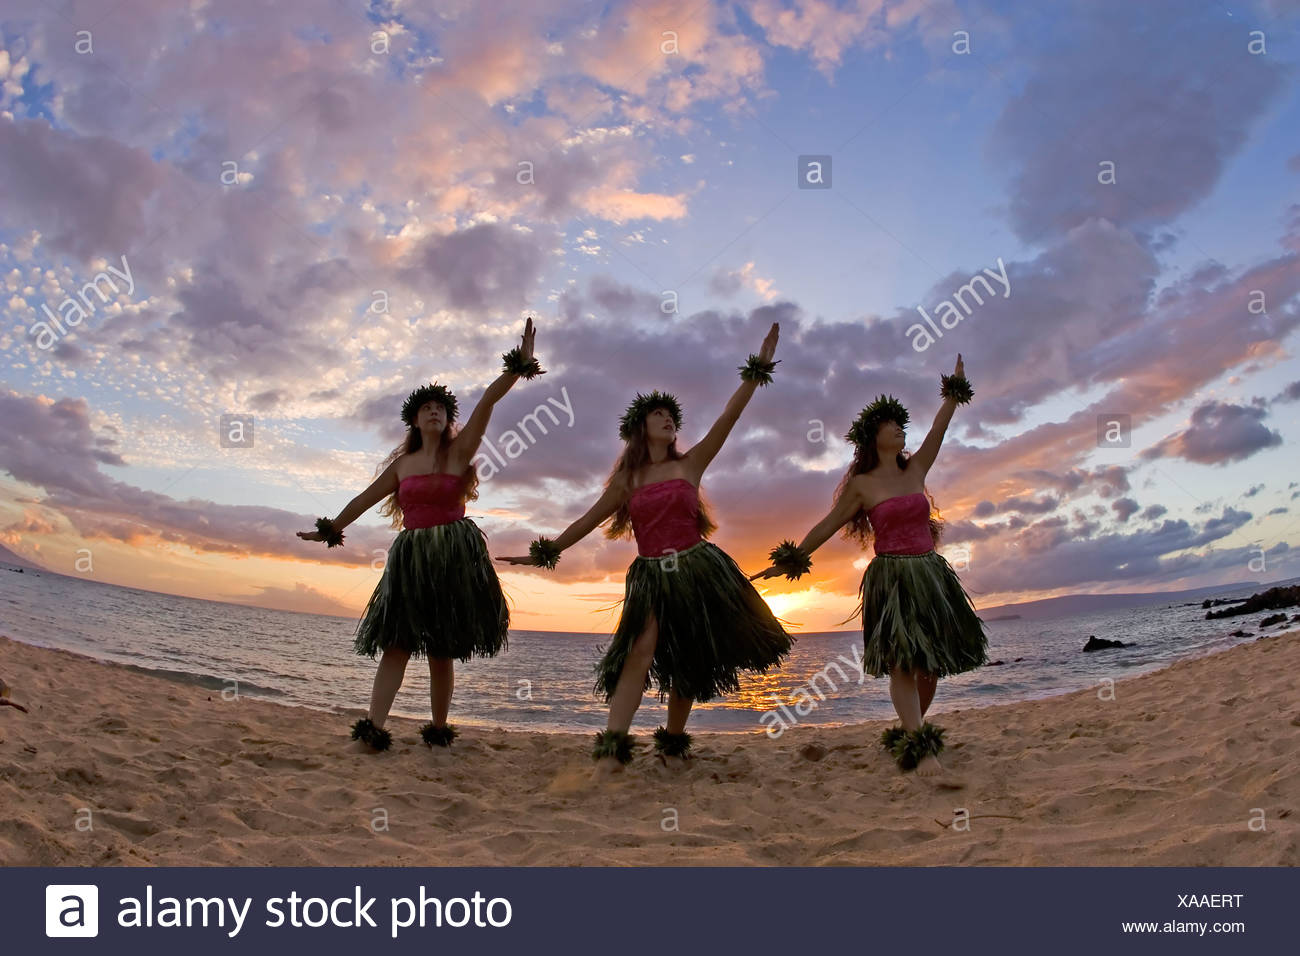 Three hula dancers in ti leaf skirts dance on the beach at sunset at Makena, Maui. Stock Photo